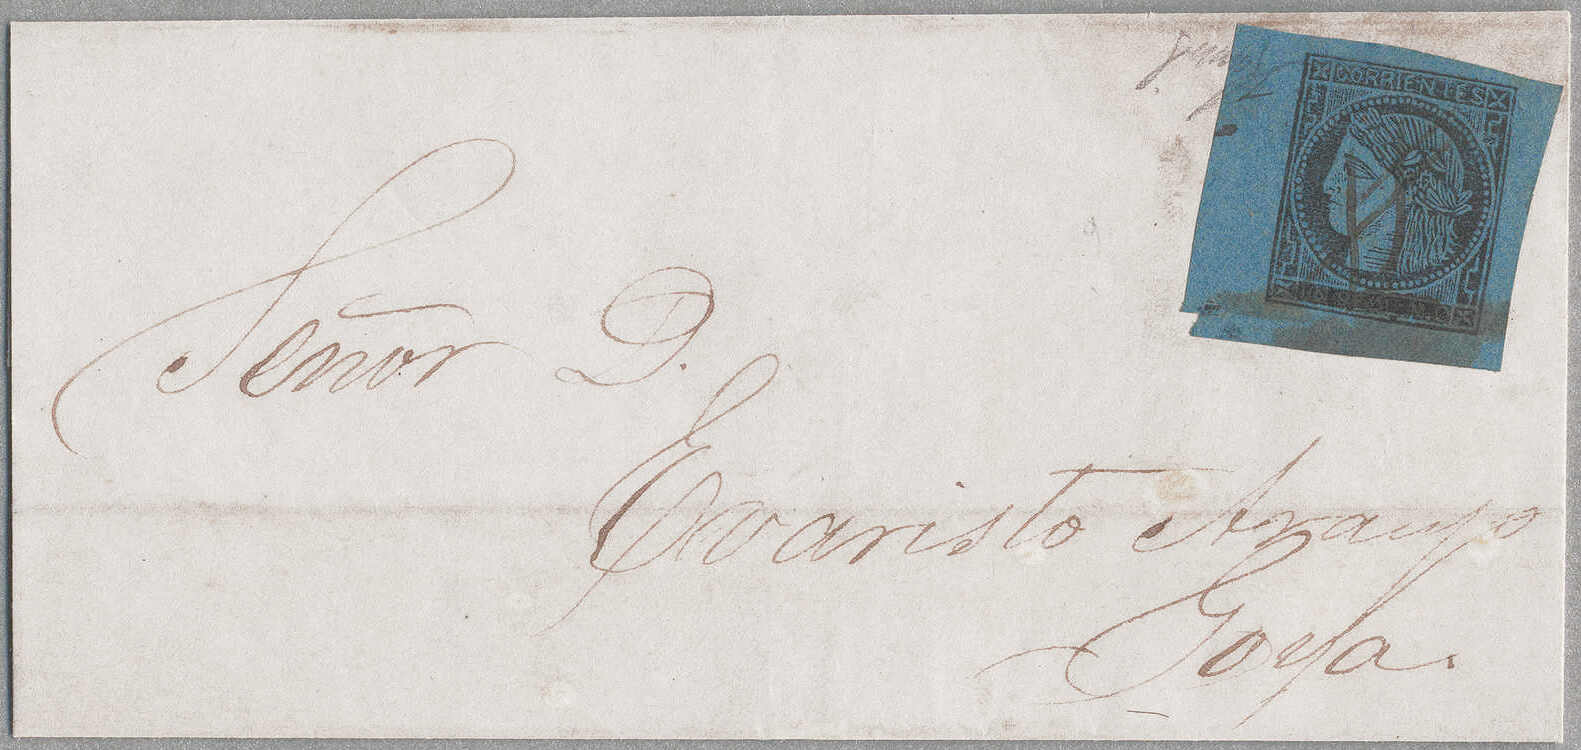 Lot 15153 - America, South/Middle/Caribbean Argentina -  classicphil GmbH 8'th classicphil Auction - Day 2